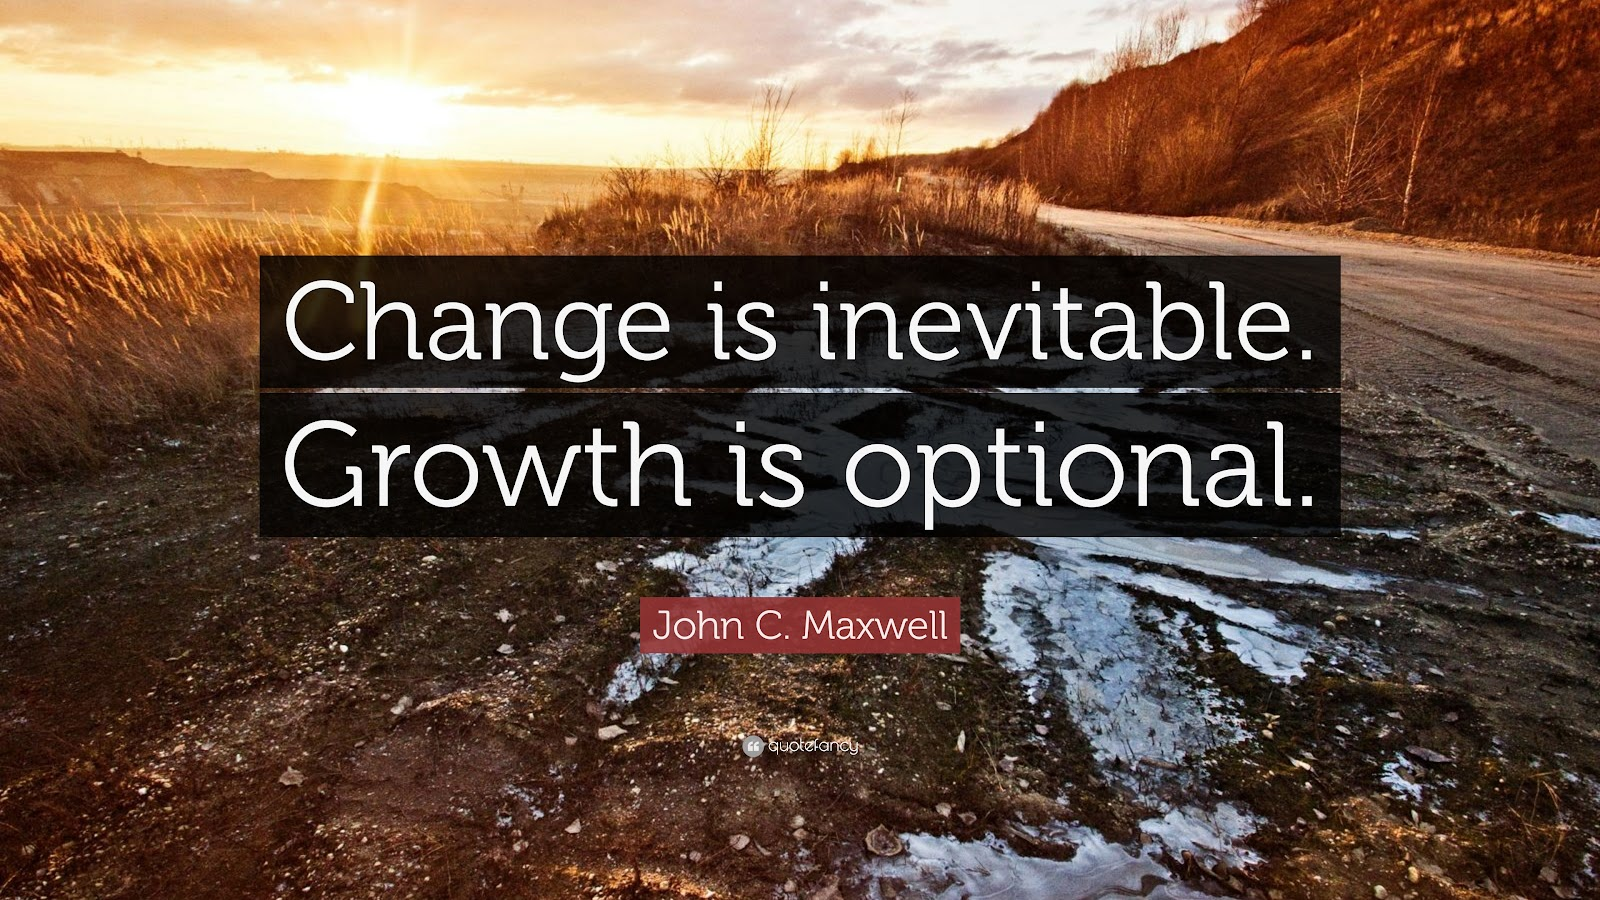 12334-John-C-Maxwell-Quote-Change-is-inevitable-Growth-is-optional.jpg